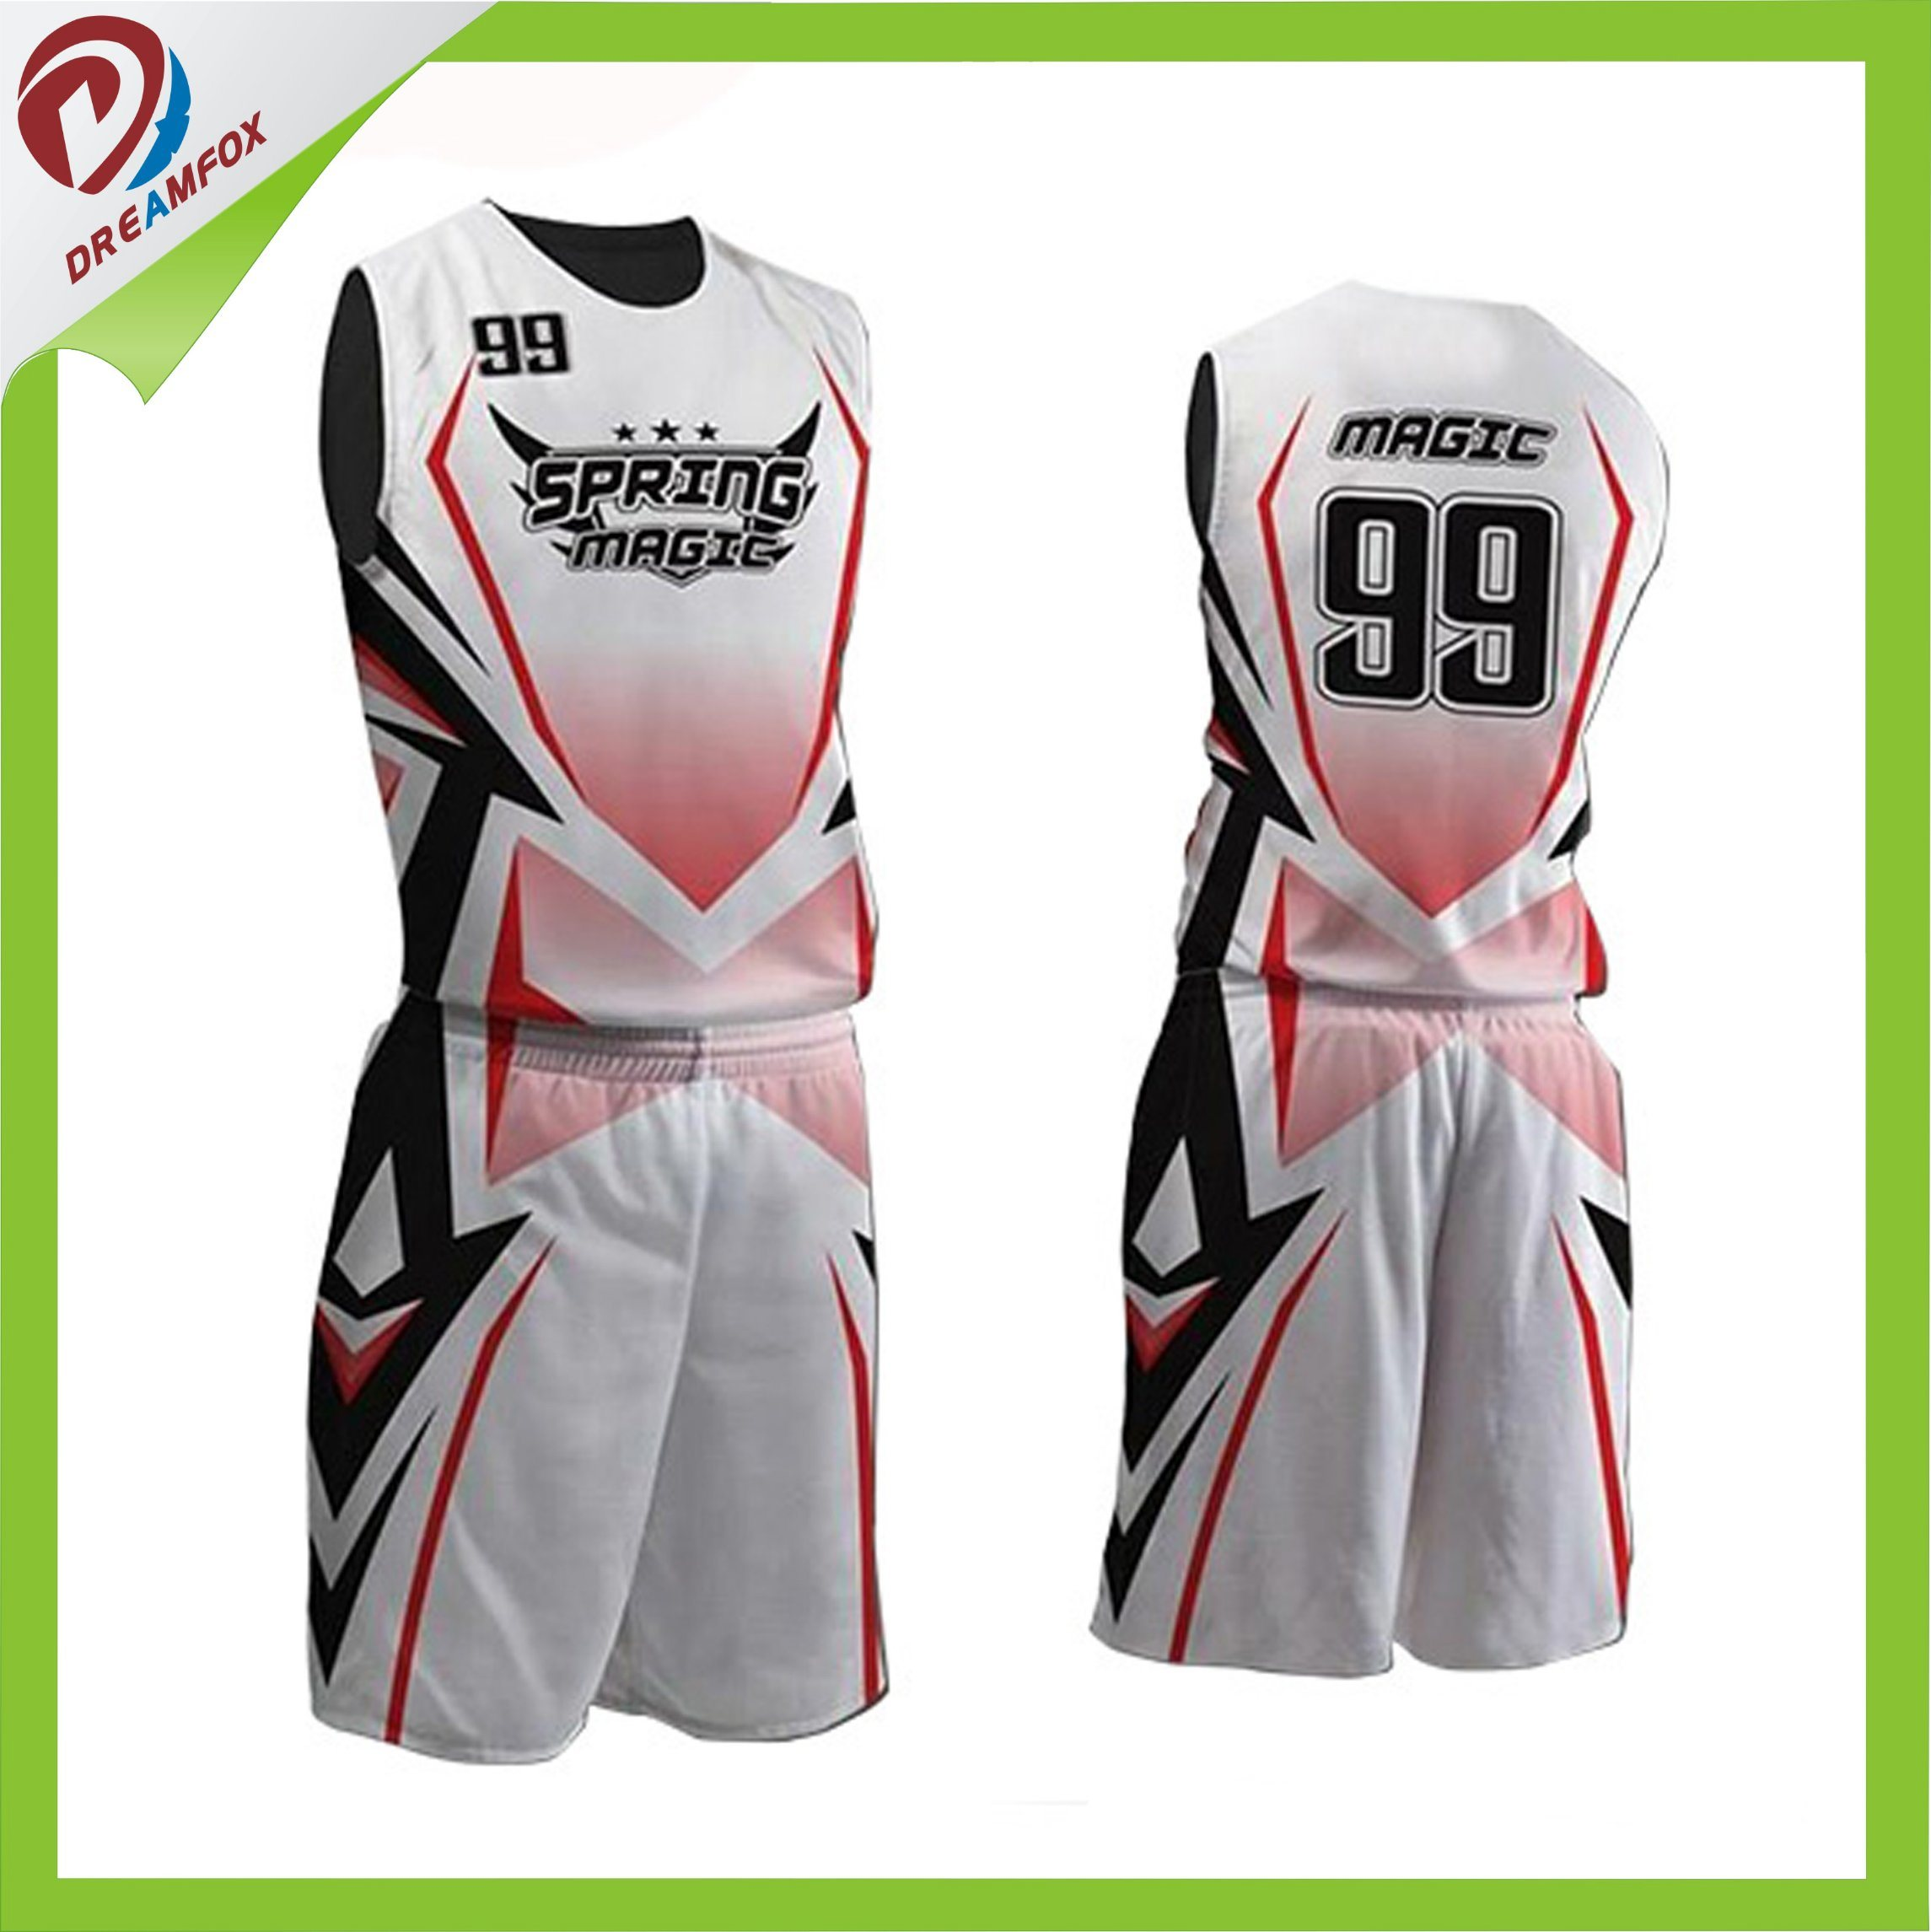 f2992487a4c China 100 Polyester Custom Fashion Sublimation Basketball Jersey. Hongen  Apparel 2017 Custom Best Latest Basketball Jersey Design 2017. New Black Red  ...